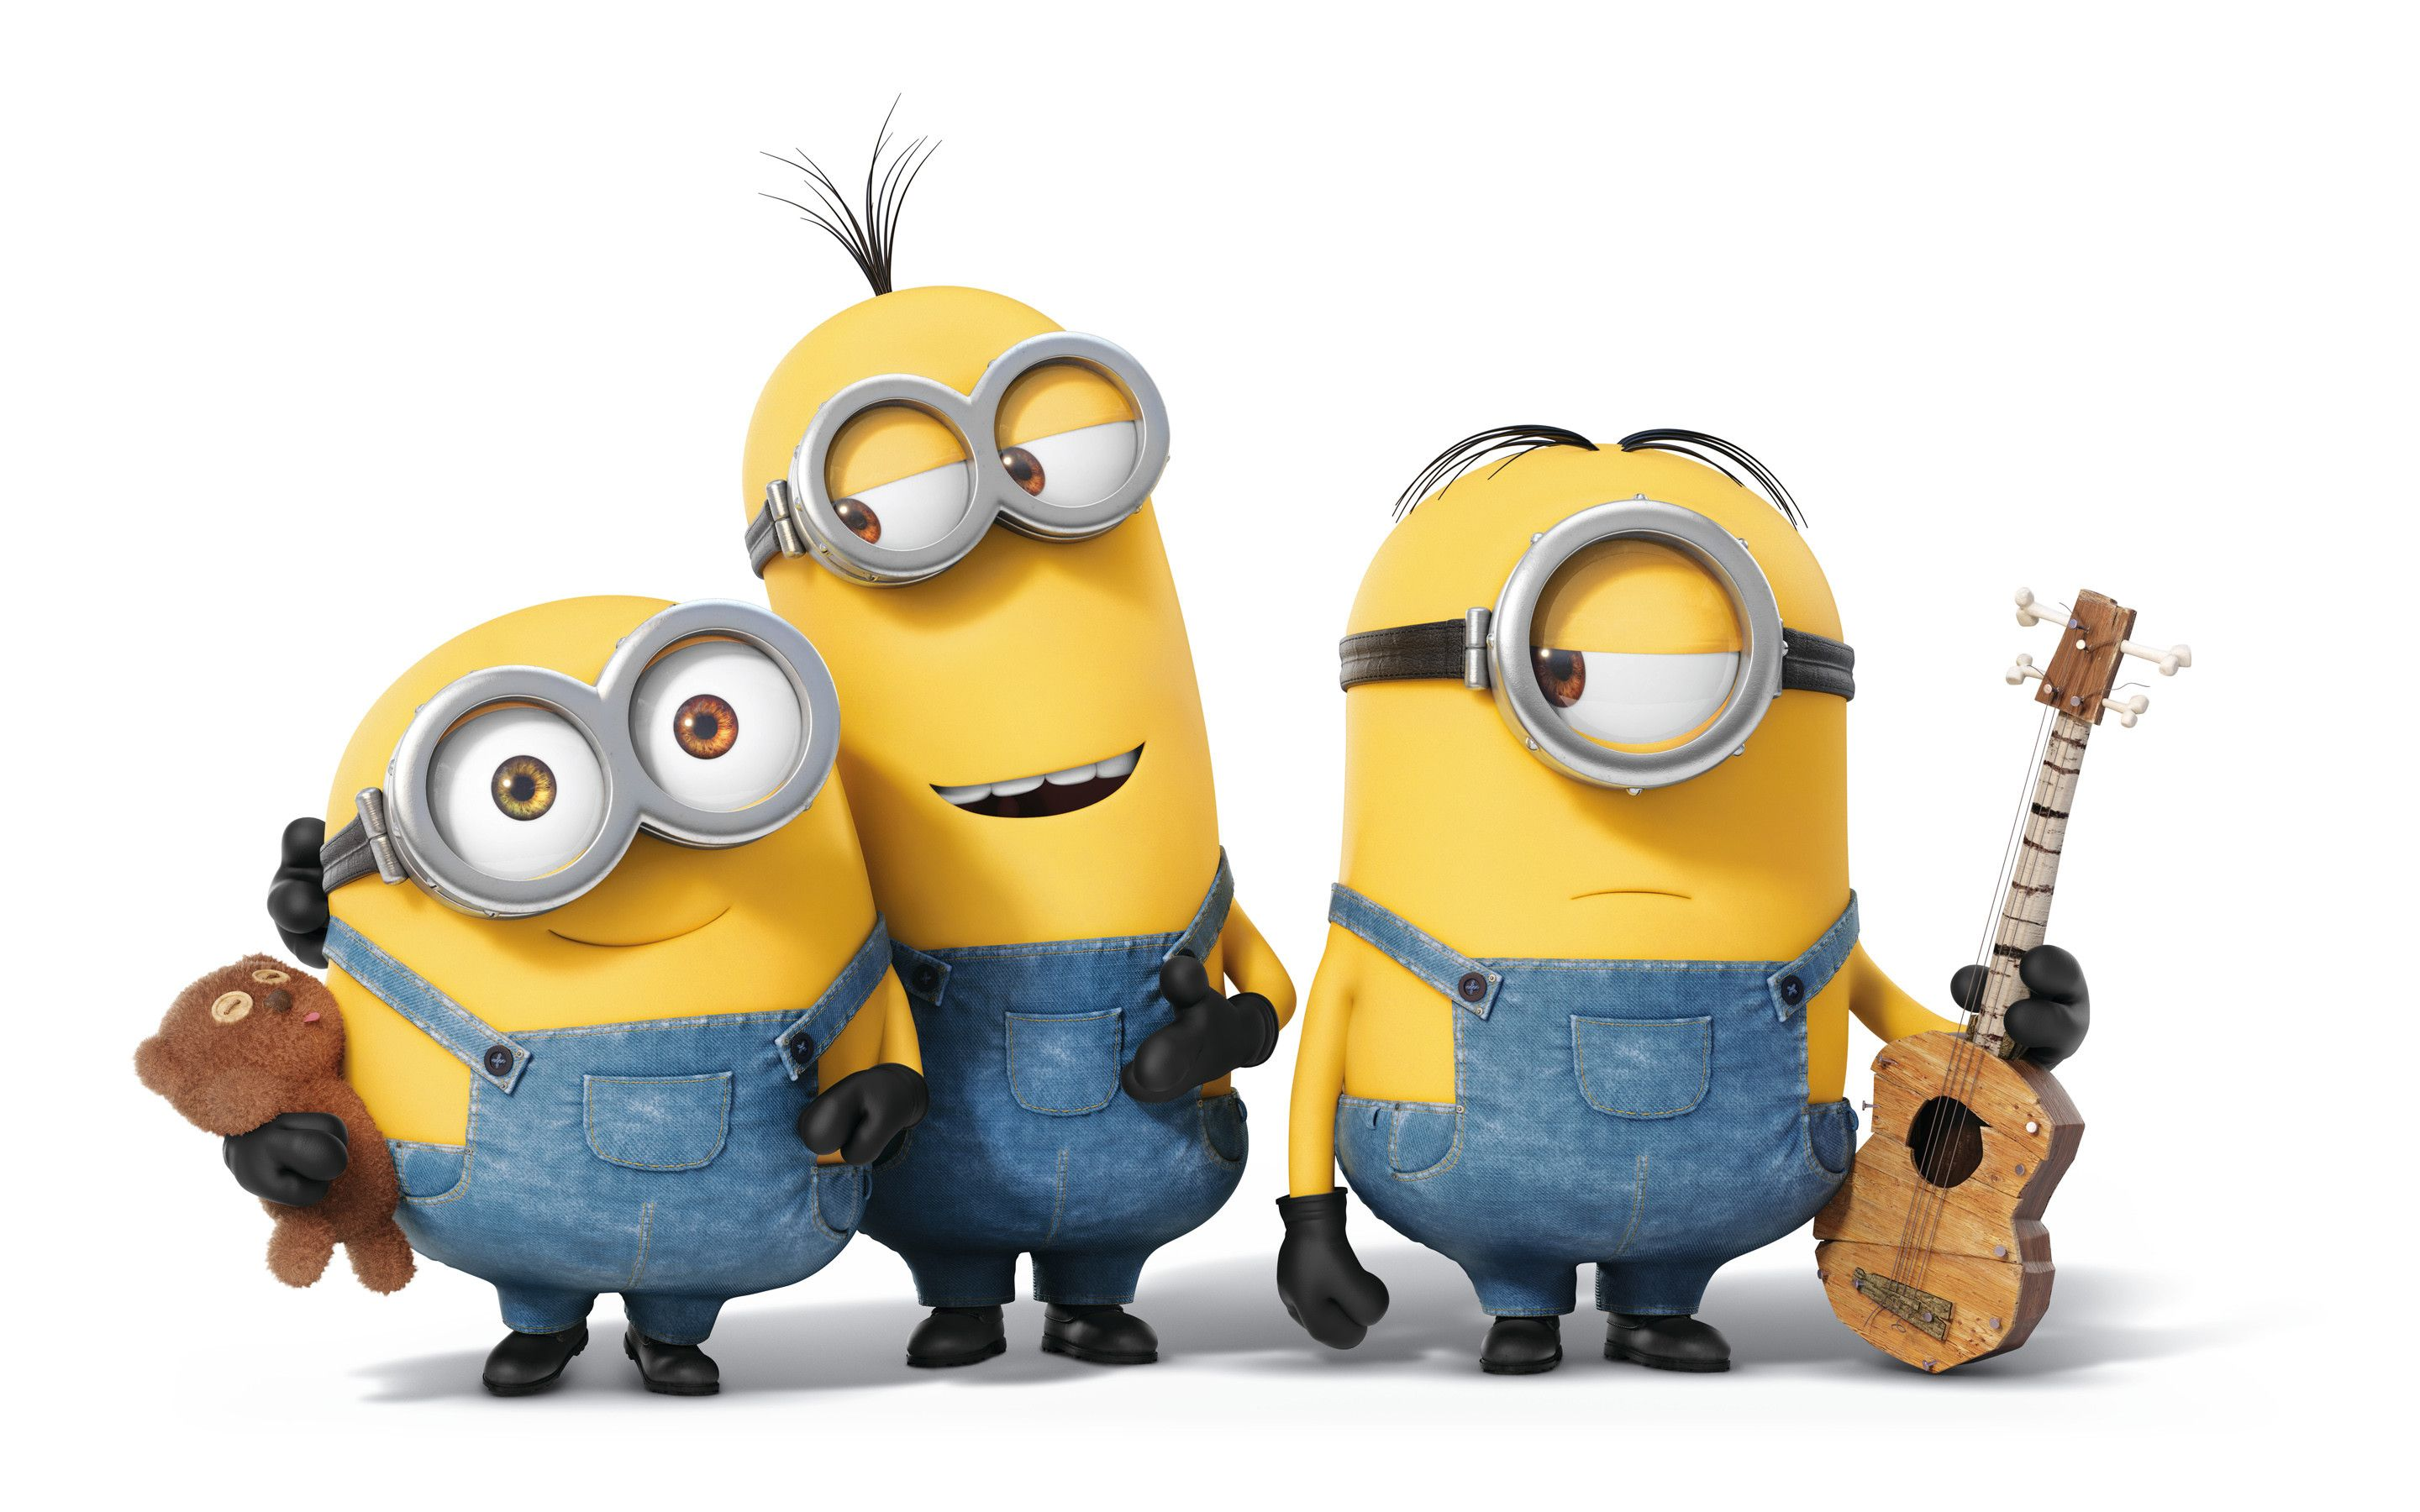 70 Live Minions Wallpapers On Wallpaperplay Cute Minions Wallpaper Minion Wallpaper Iphone Minions Wallpaper